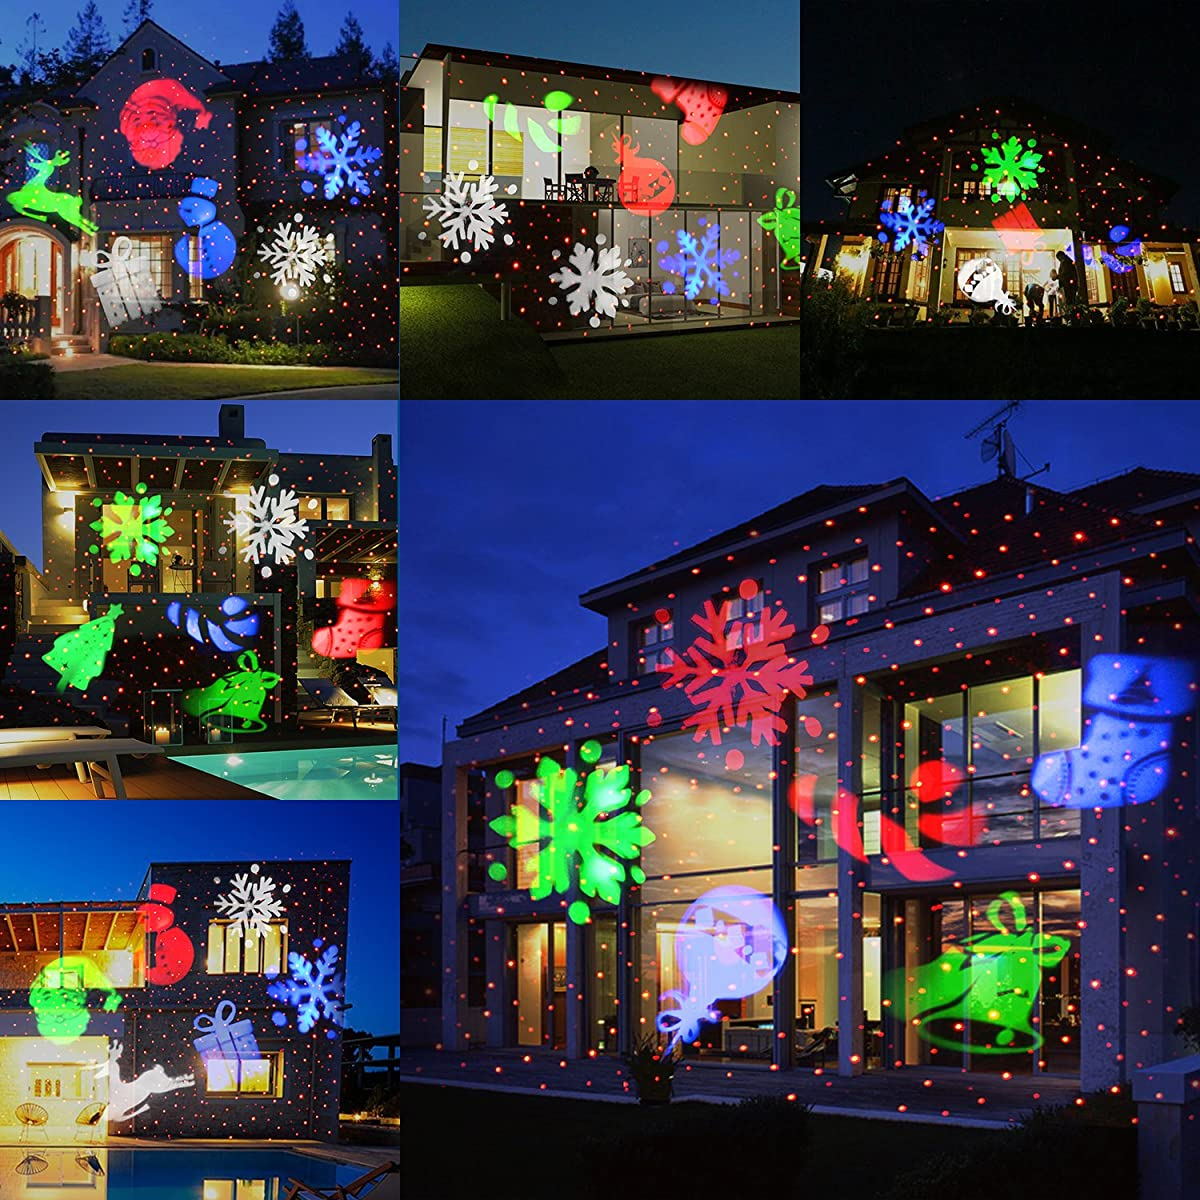 UNIFUN Christmas Laser Projector Light Bright Led Landscape Spotlight Indoor and Outdoor Waterproof Projection Led Lights for Holiday, Christmas Decorations